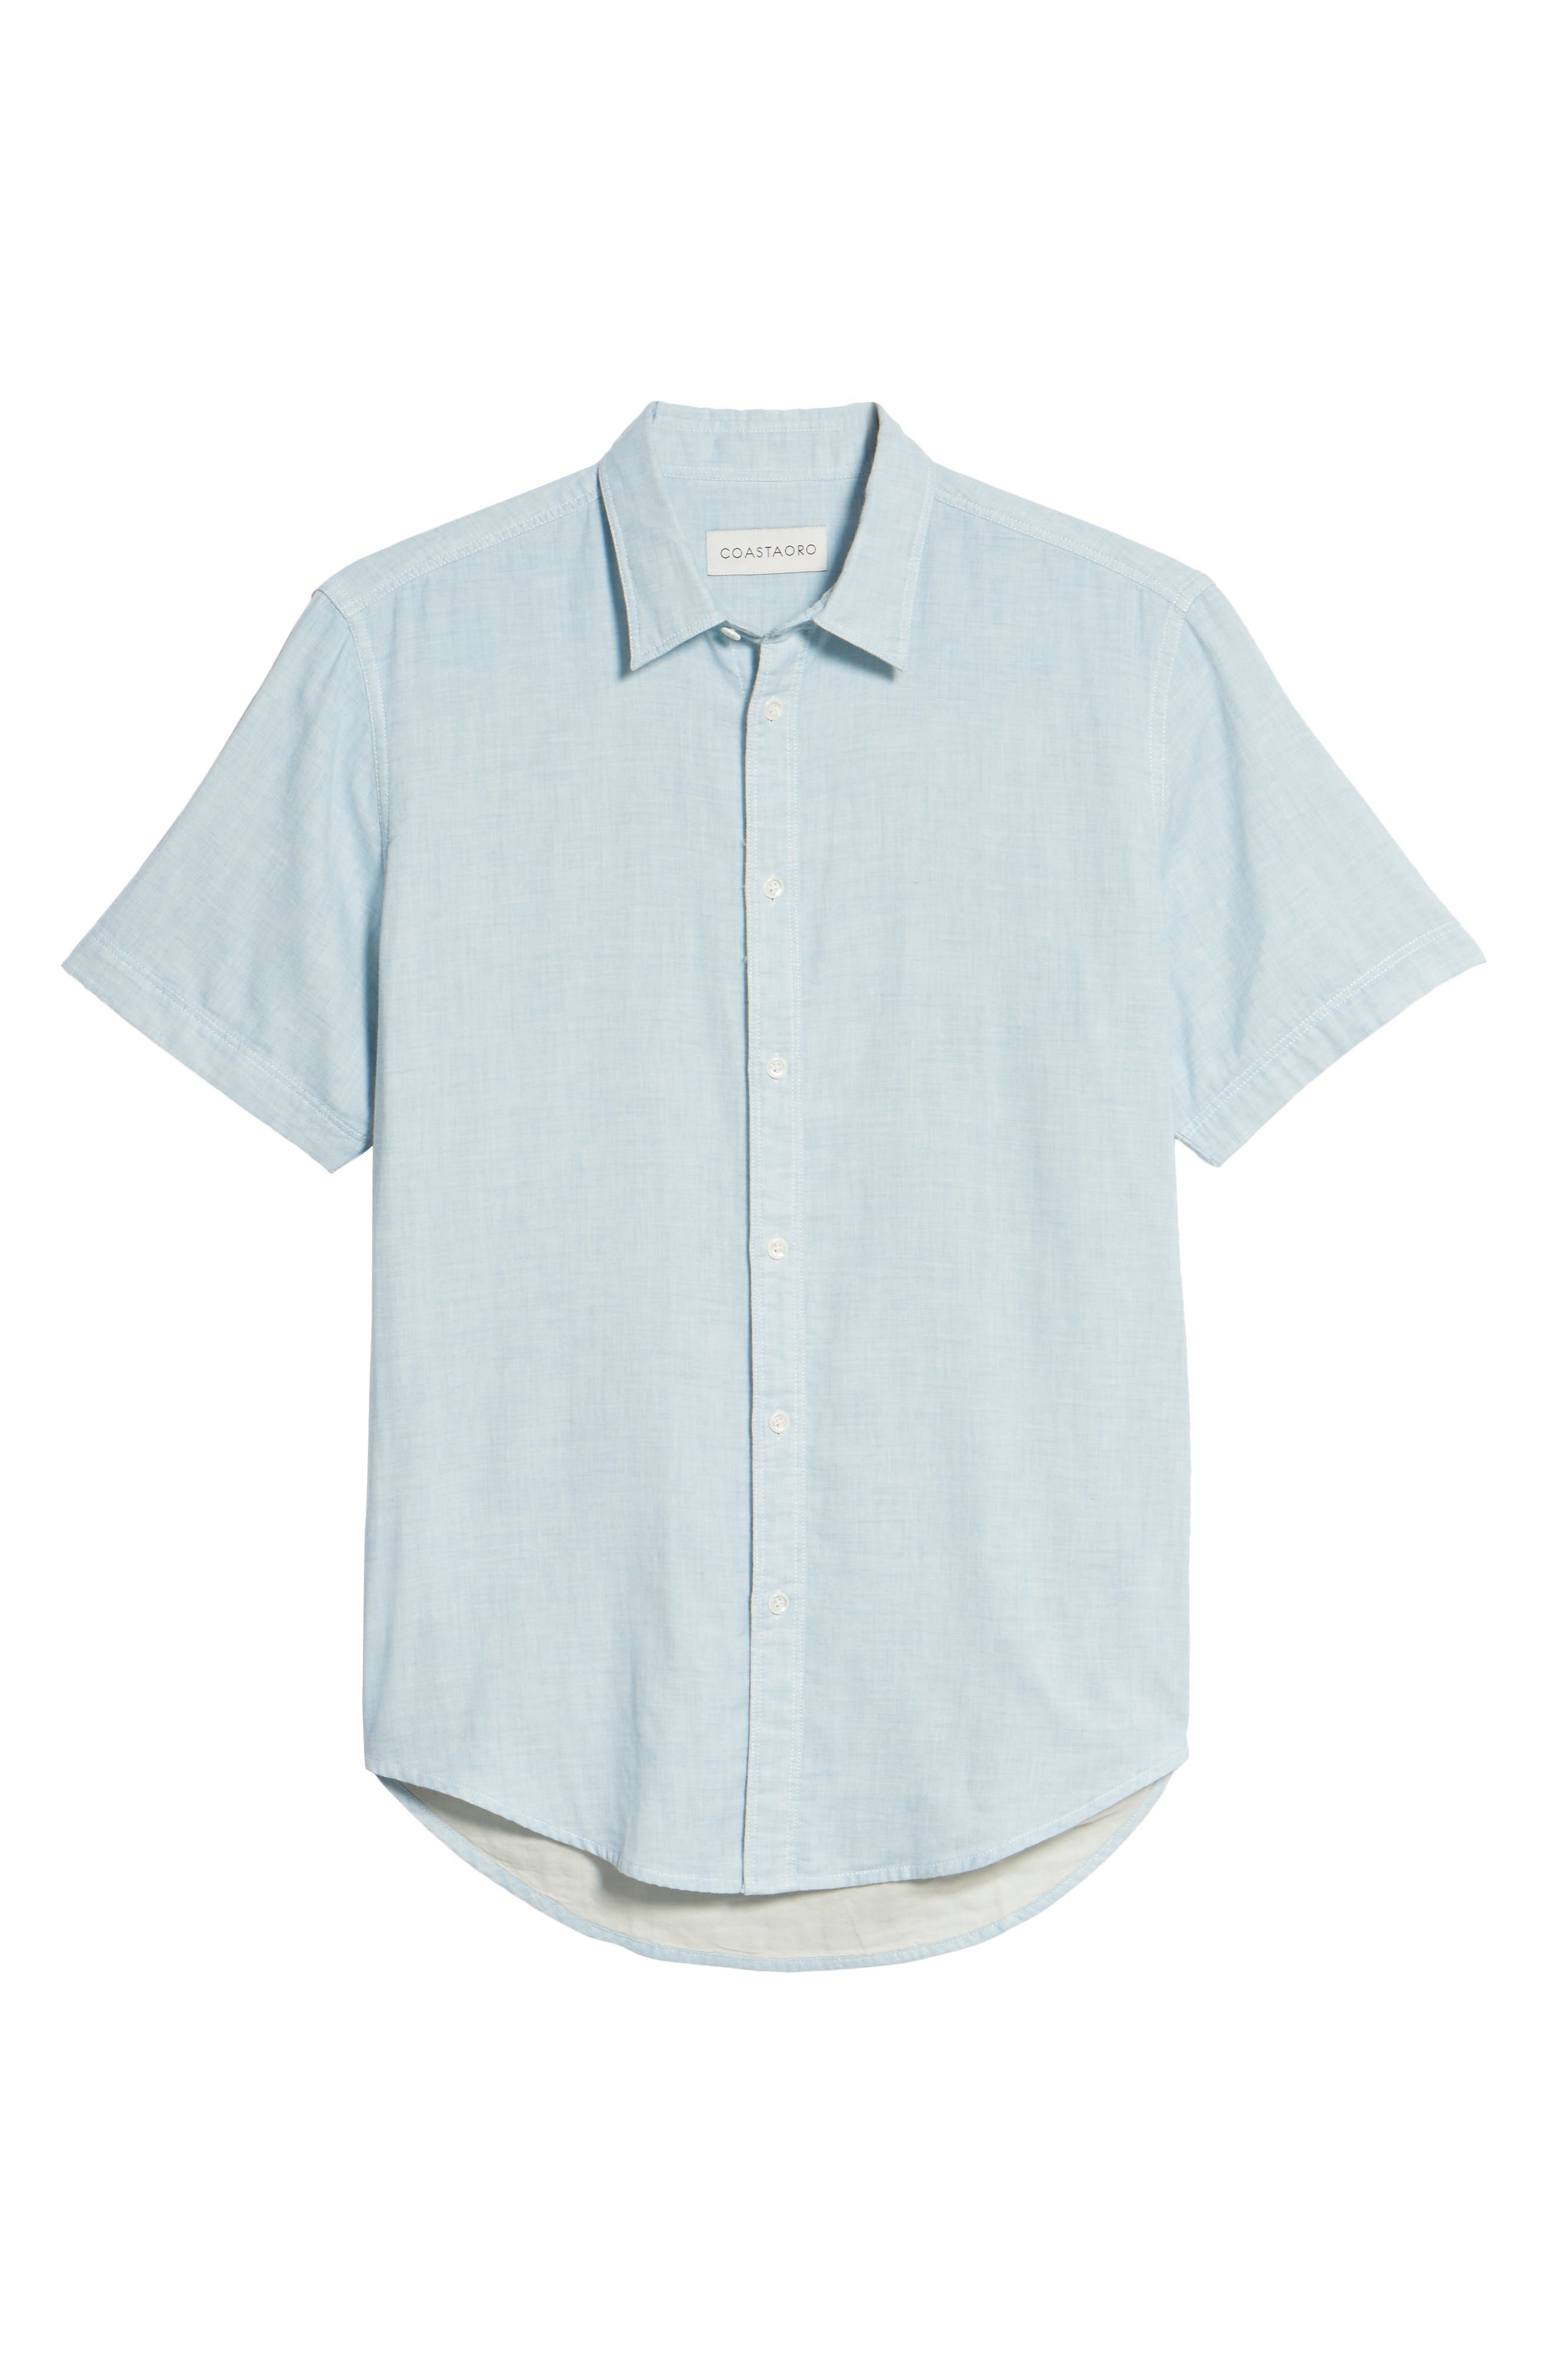 Encinitas Regular Fit Sport Shirt,                             Alternate thumbnail 6, color,                             451